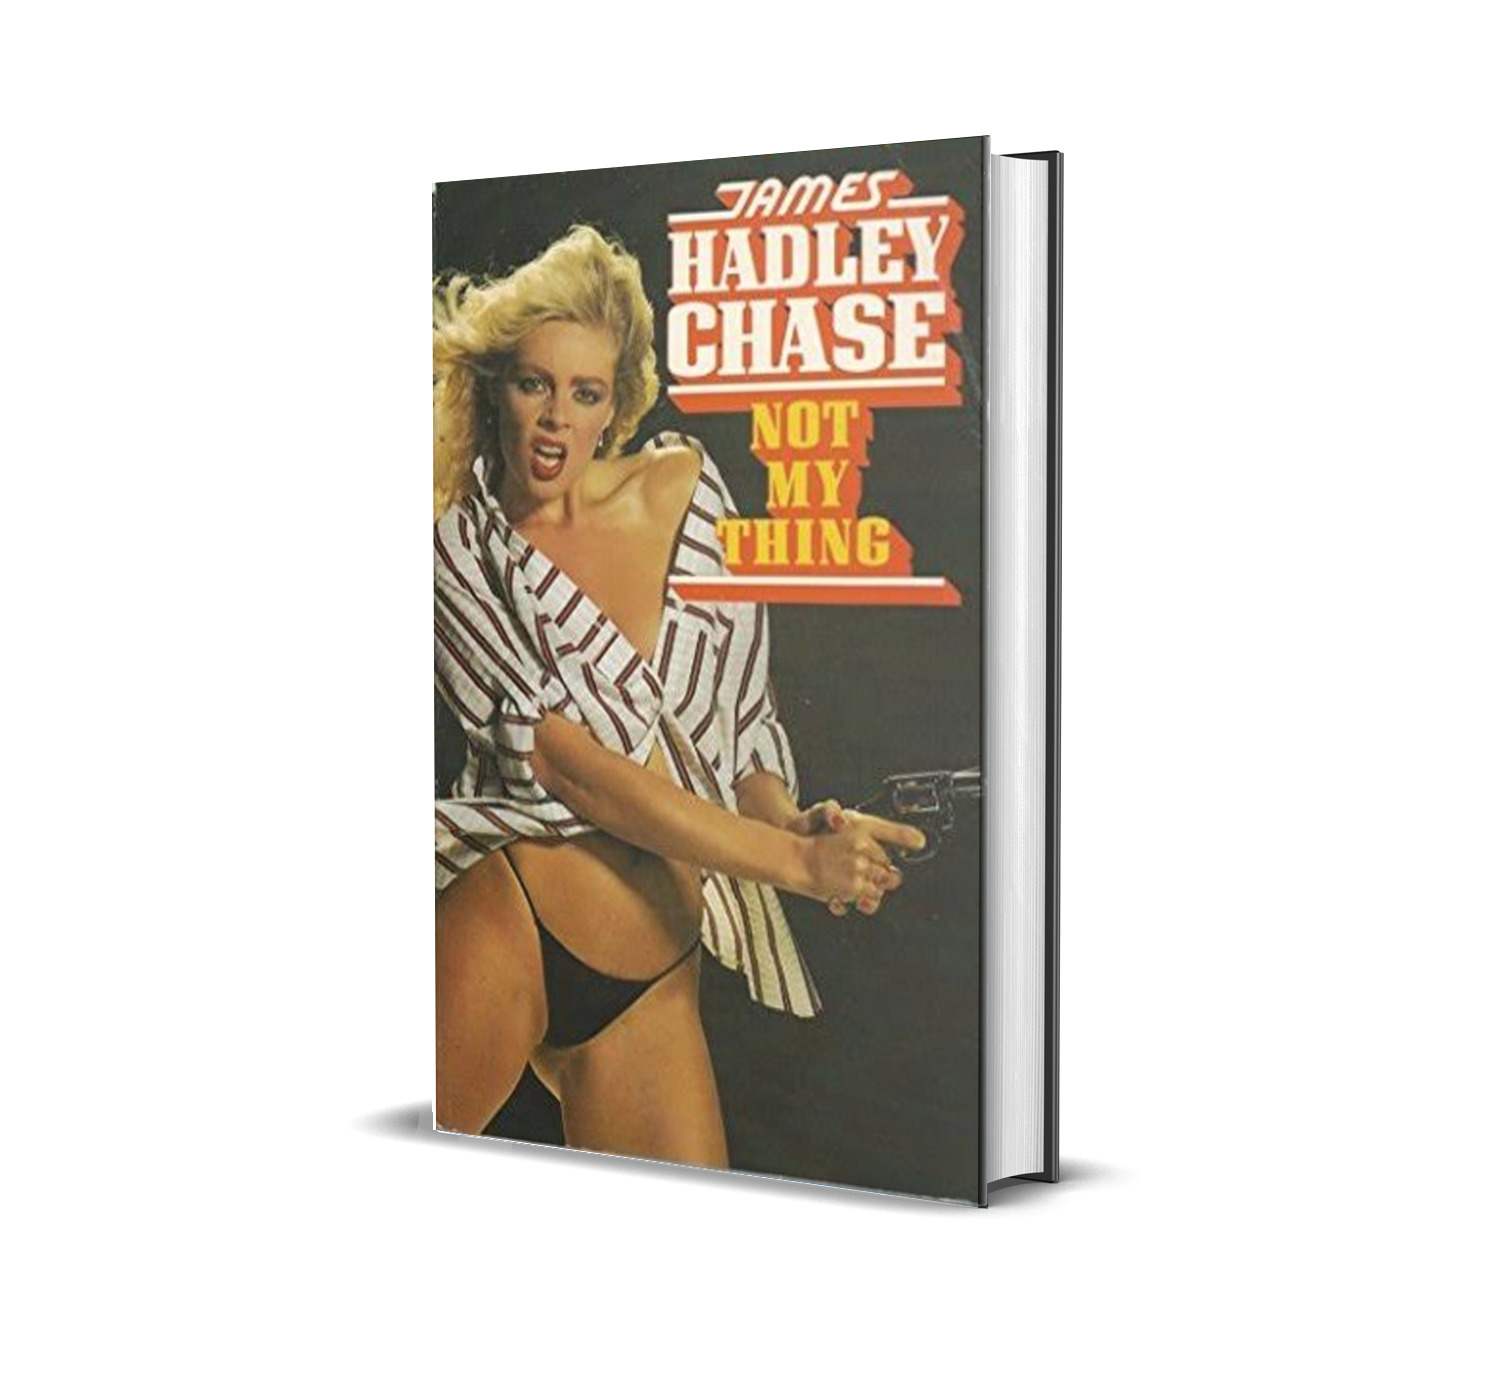 NOT MY THING JAMES HADLEY CHASE